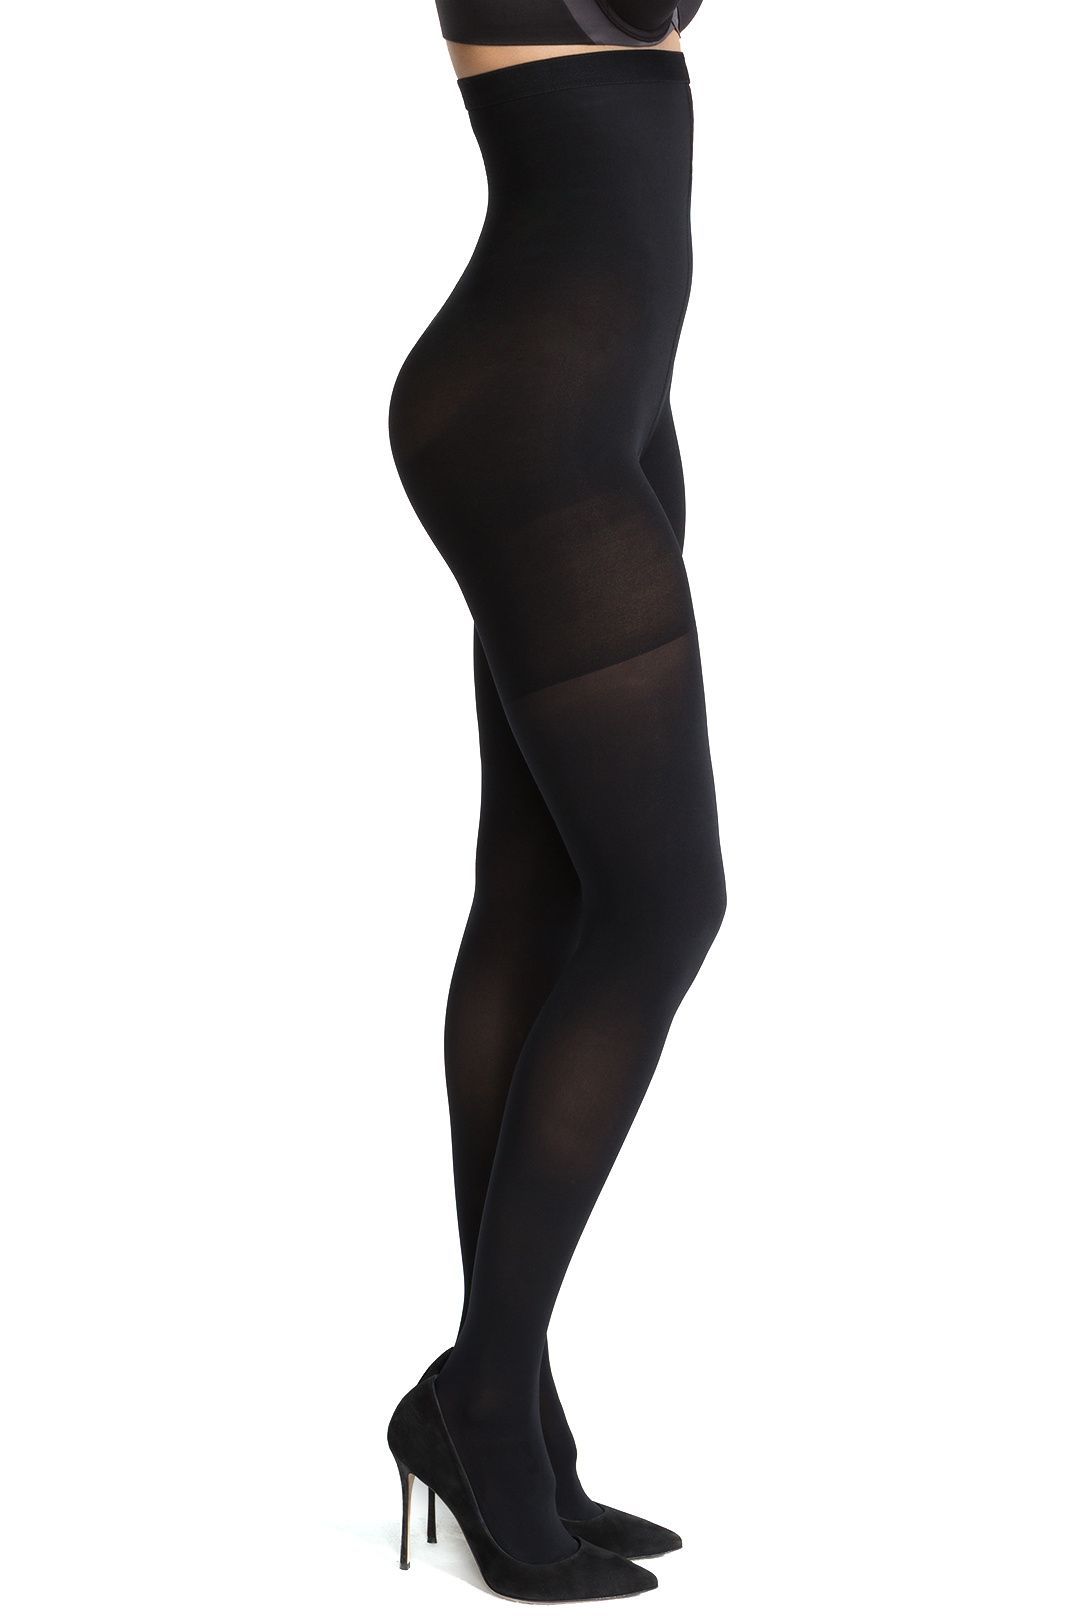 Spanx NEW Very Black Women's Size D High Waist Shaping Luxe Leg Tights